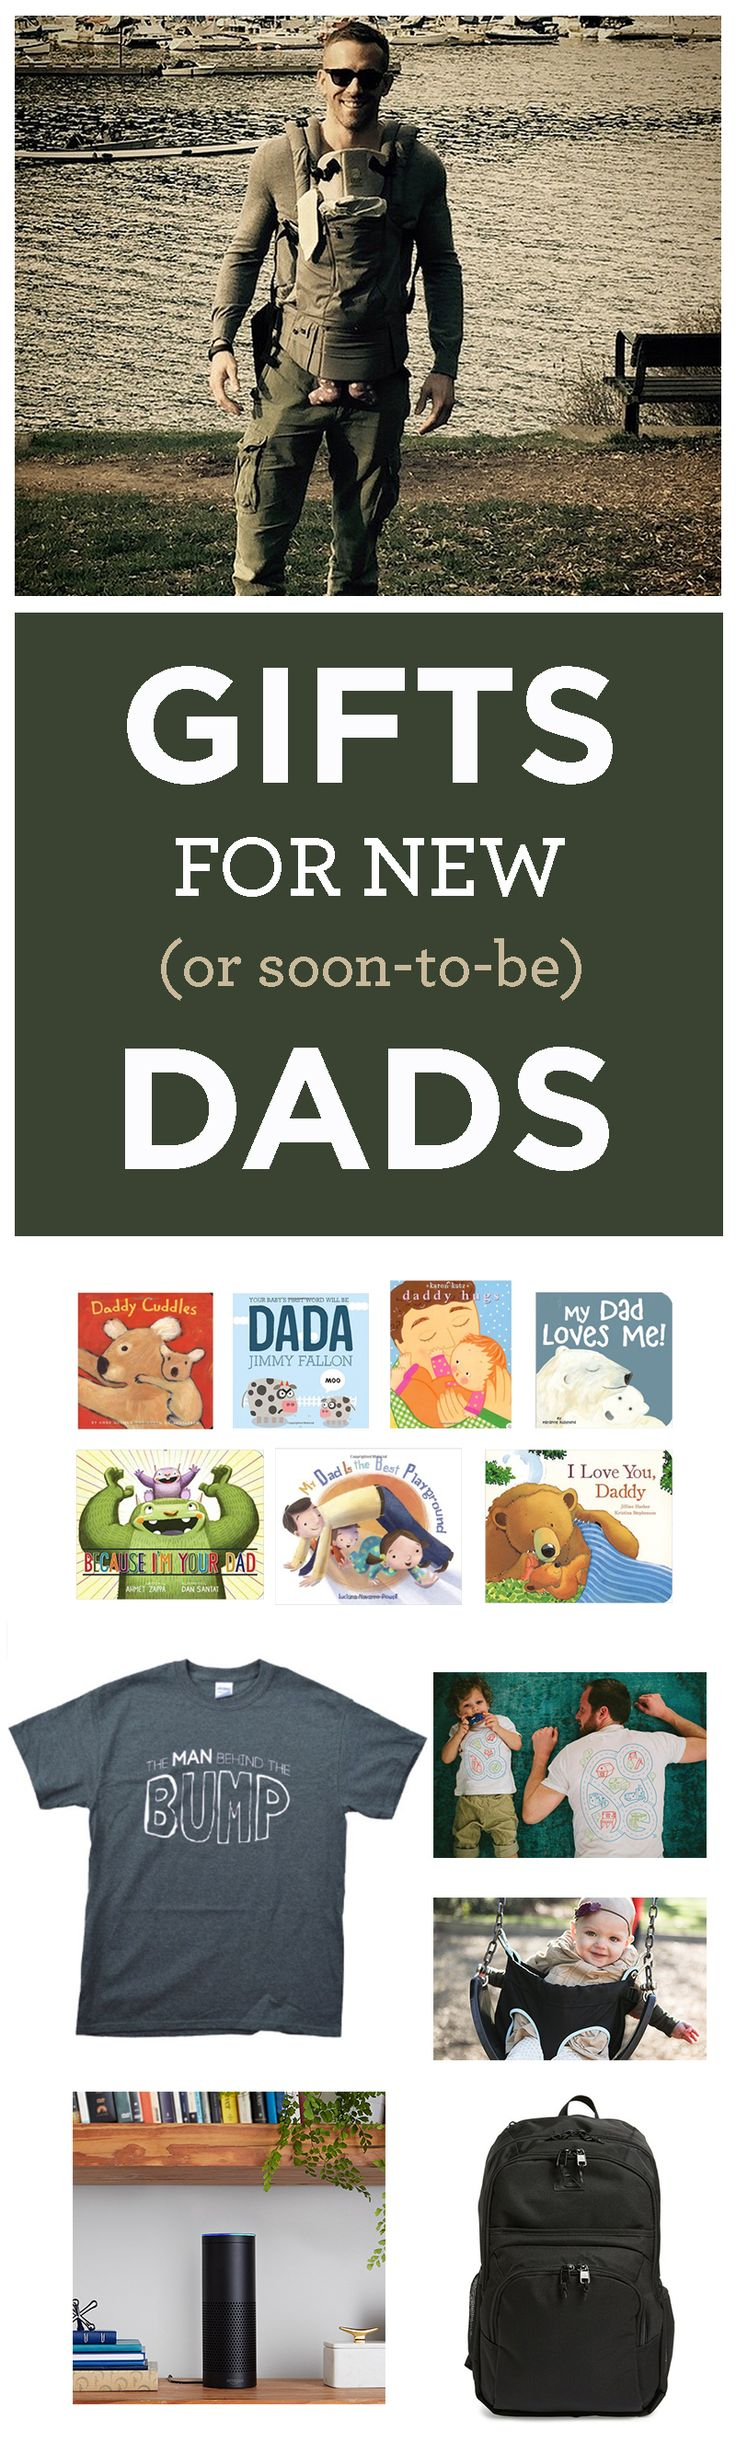 Amazing list of gift ideas to give a new dad (or soon-to-be-dad). Everything from gifts from a wife to a first time dad to just plain funny.